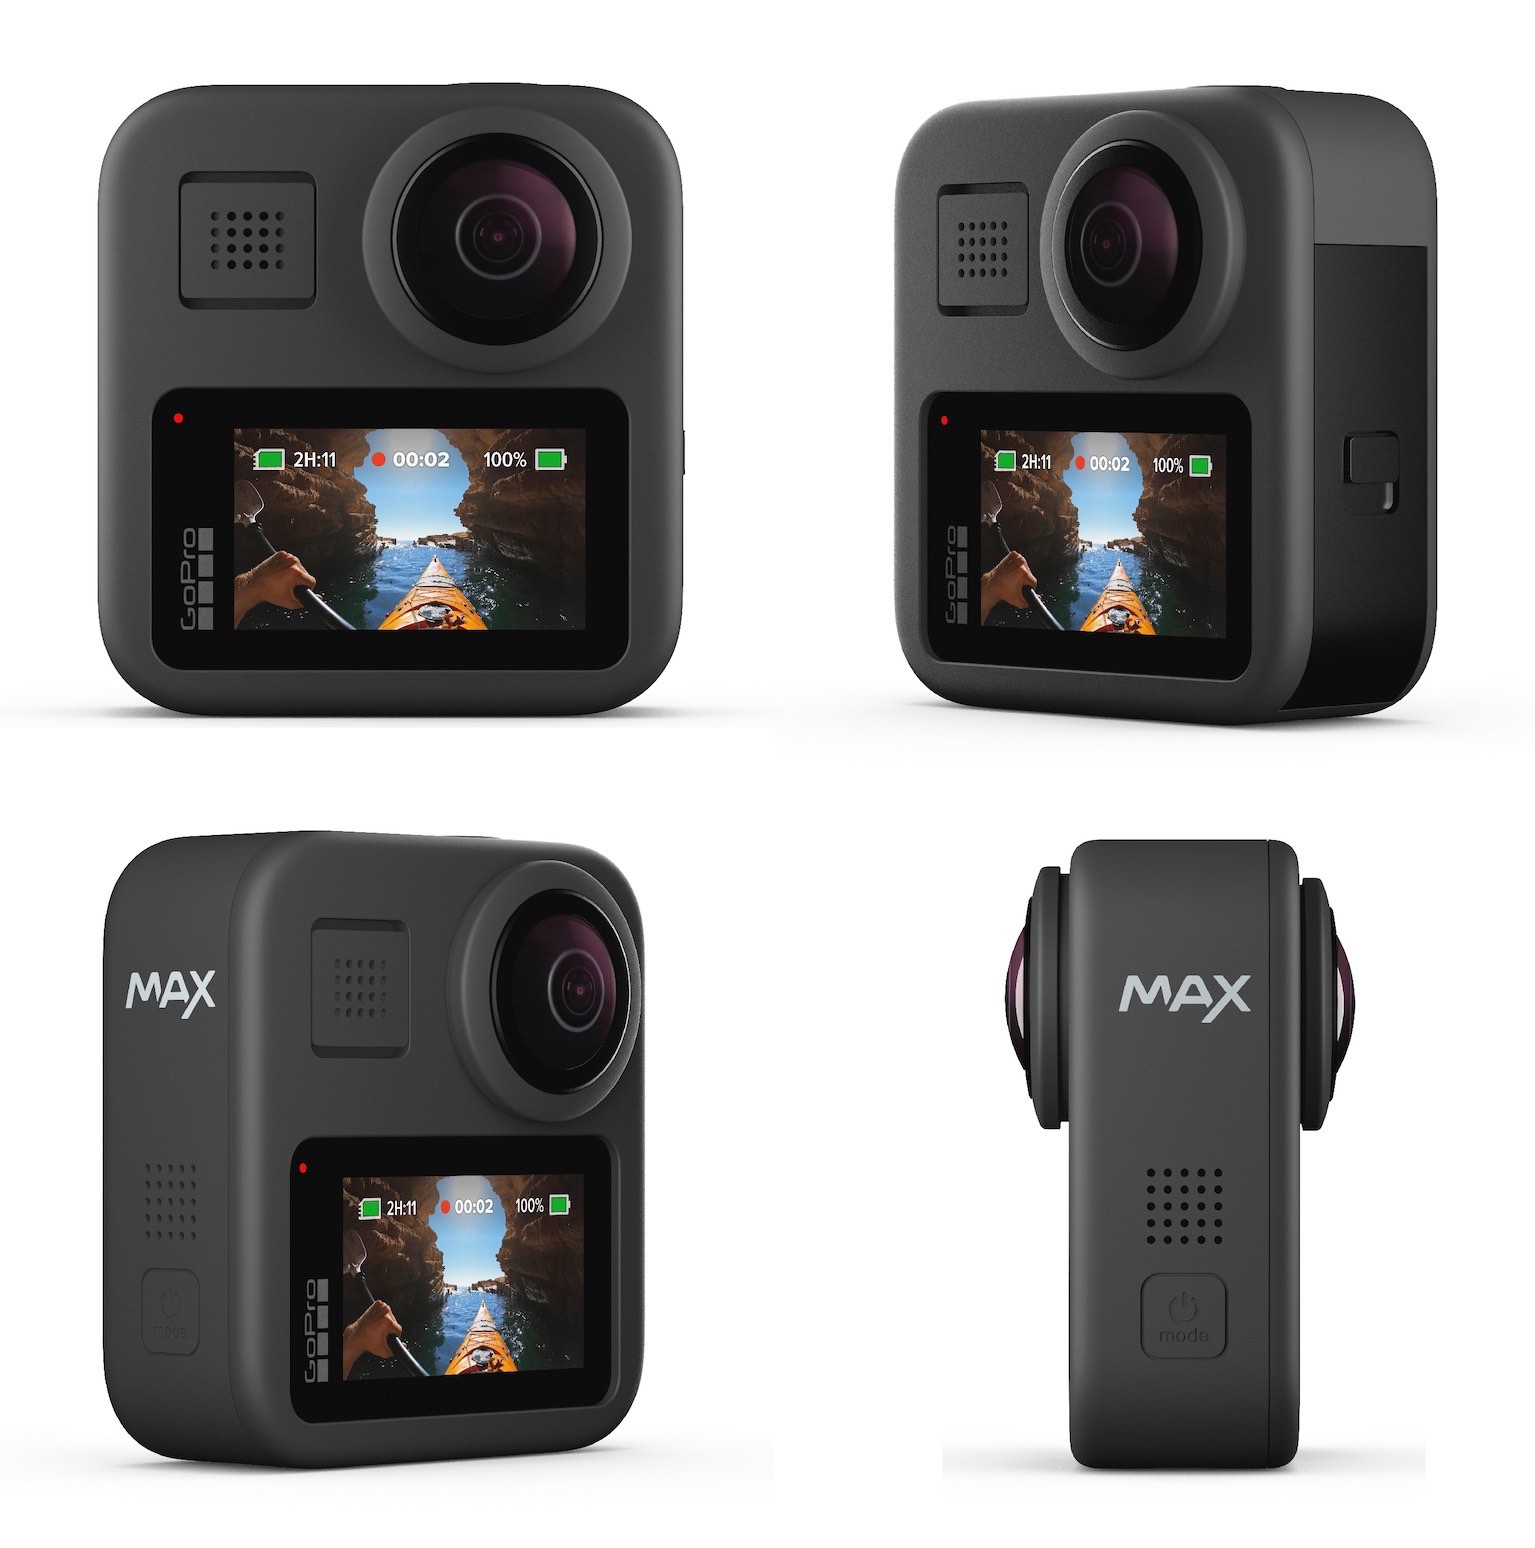 Introducing the new GoPro MAX